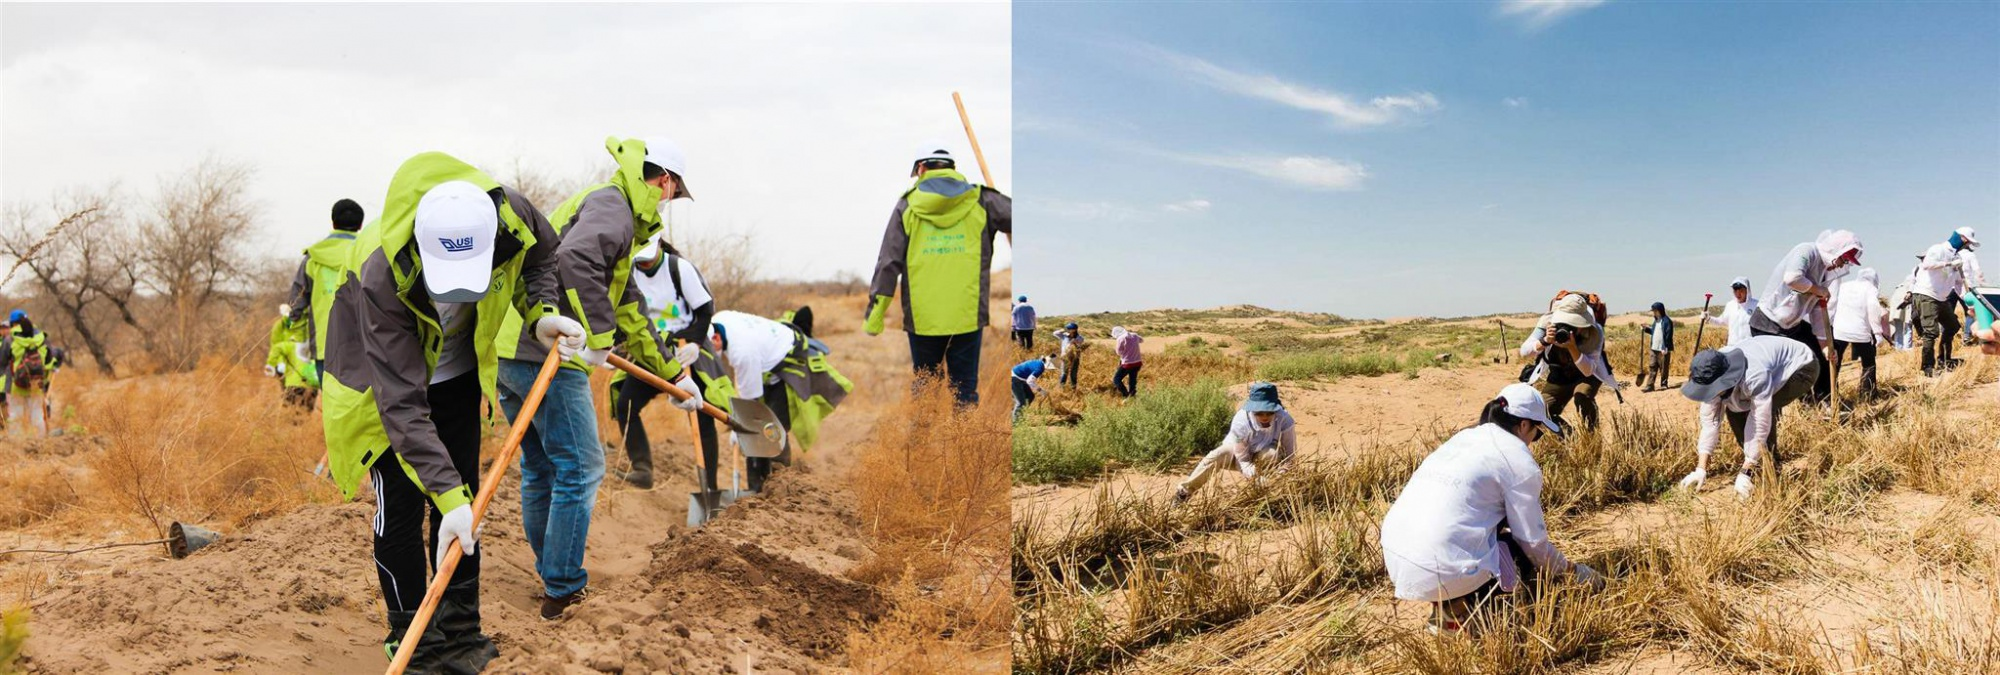 USI Planted 20,000 Trees in Inner Mongolia and Ningxia to Combat Desertification